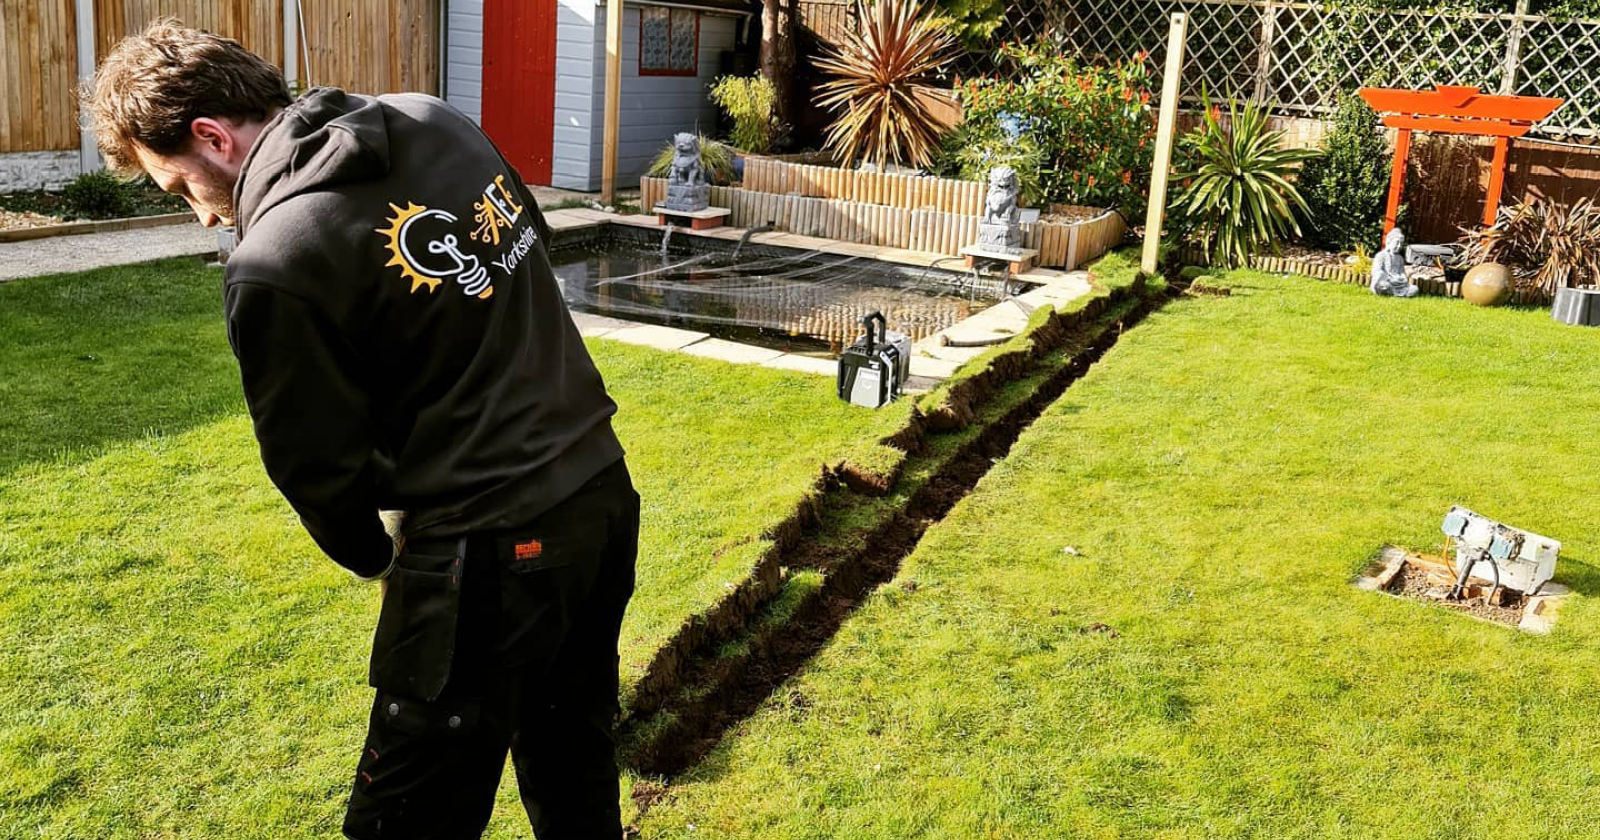 electrician from aee yorkshire digging a trench in the backyard